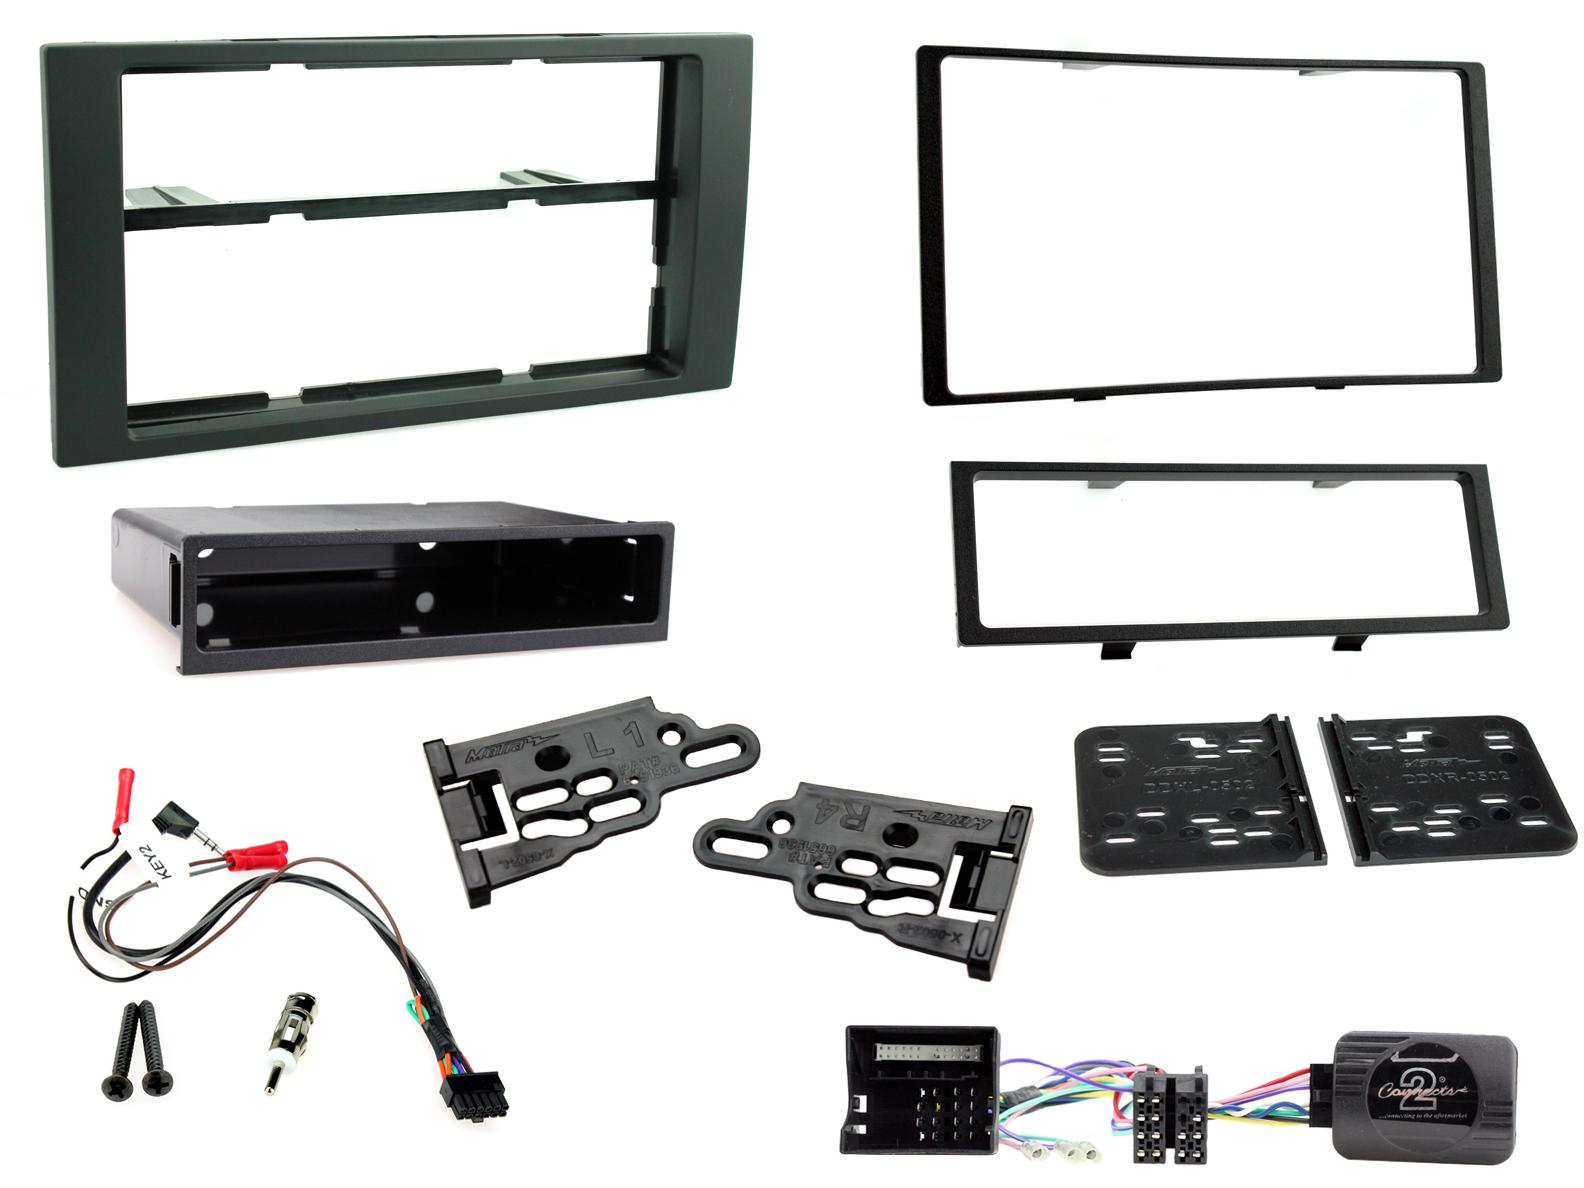 vauxhall astra j towbar wiring diagram treadmill stereo fitting accessories car we fit image of ford installation kit ctkfd21